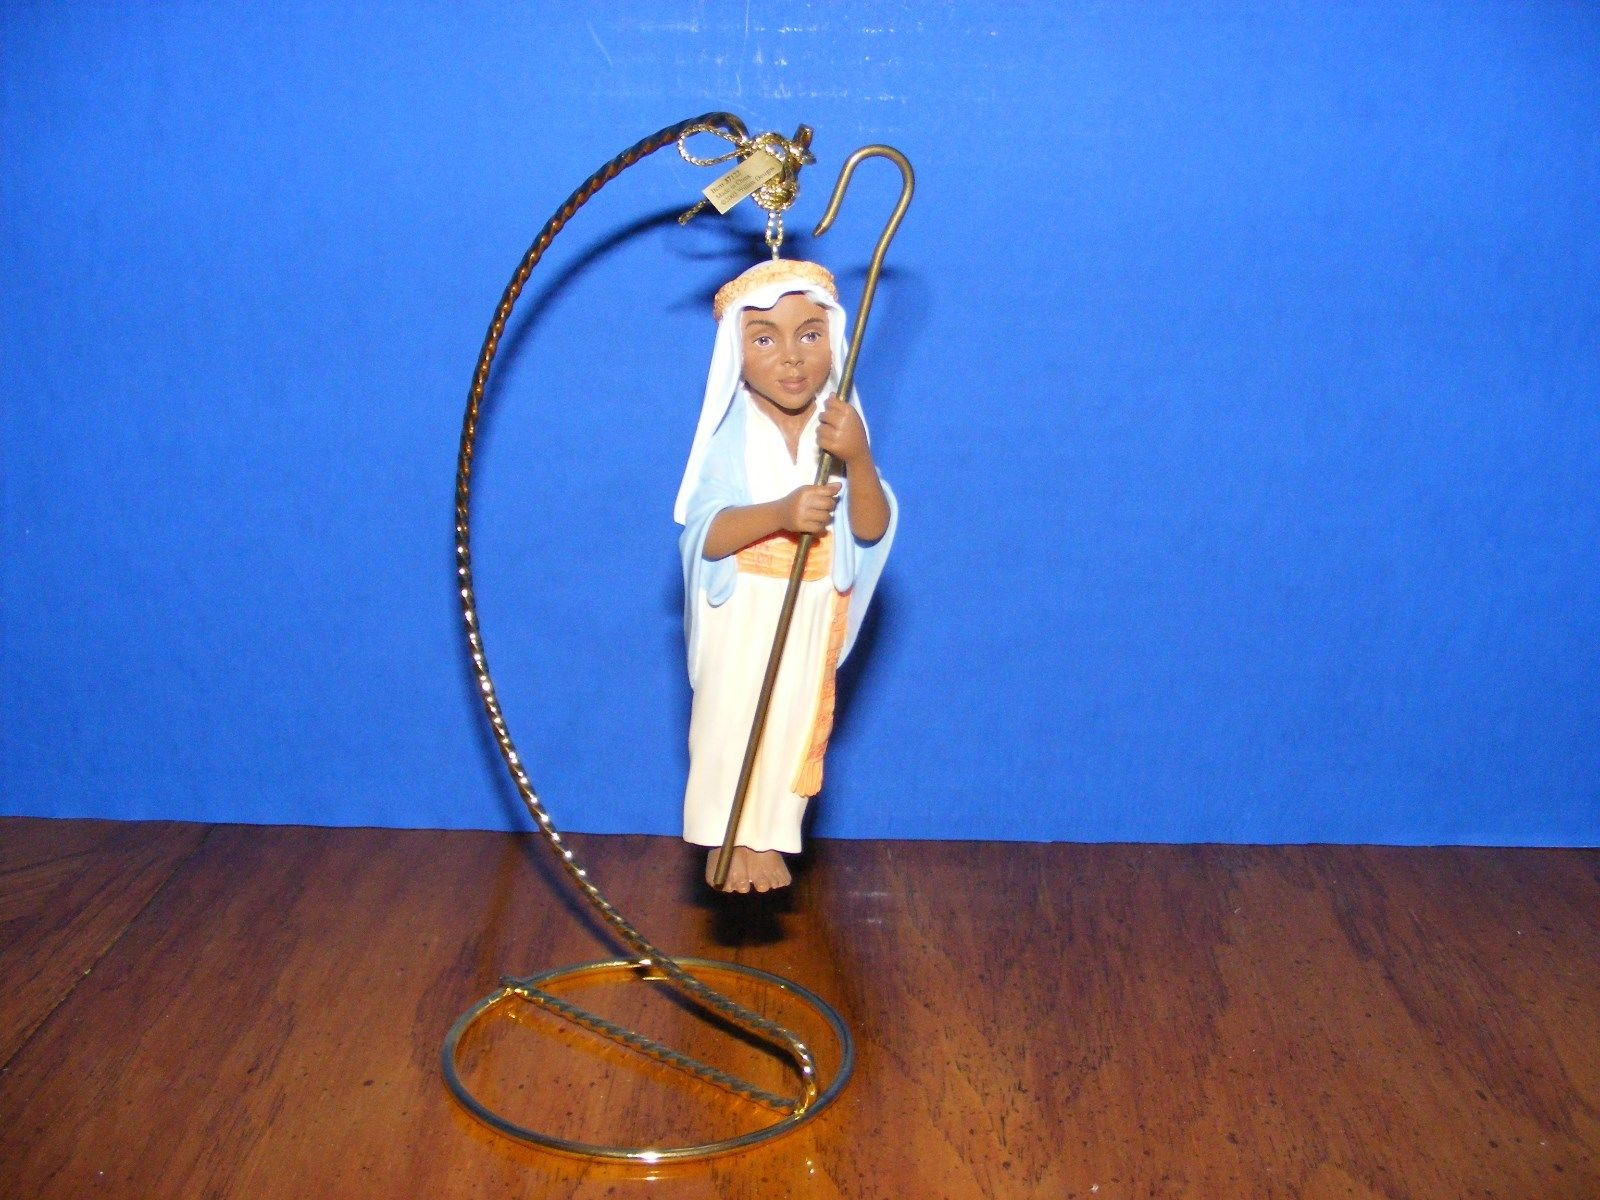 Little Shepherd ornament by Thomas Blackshear